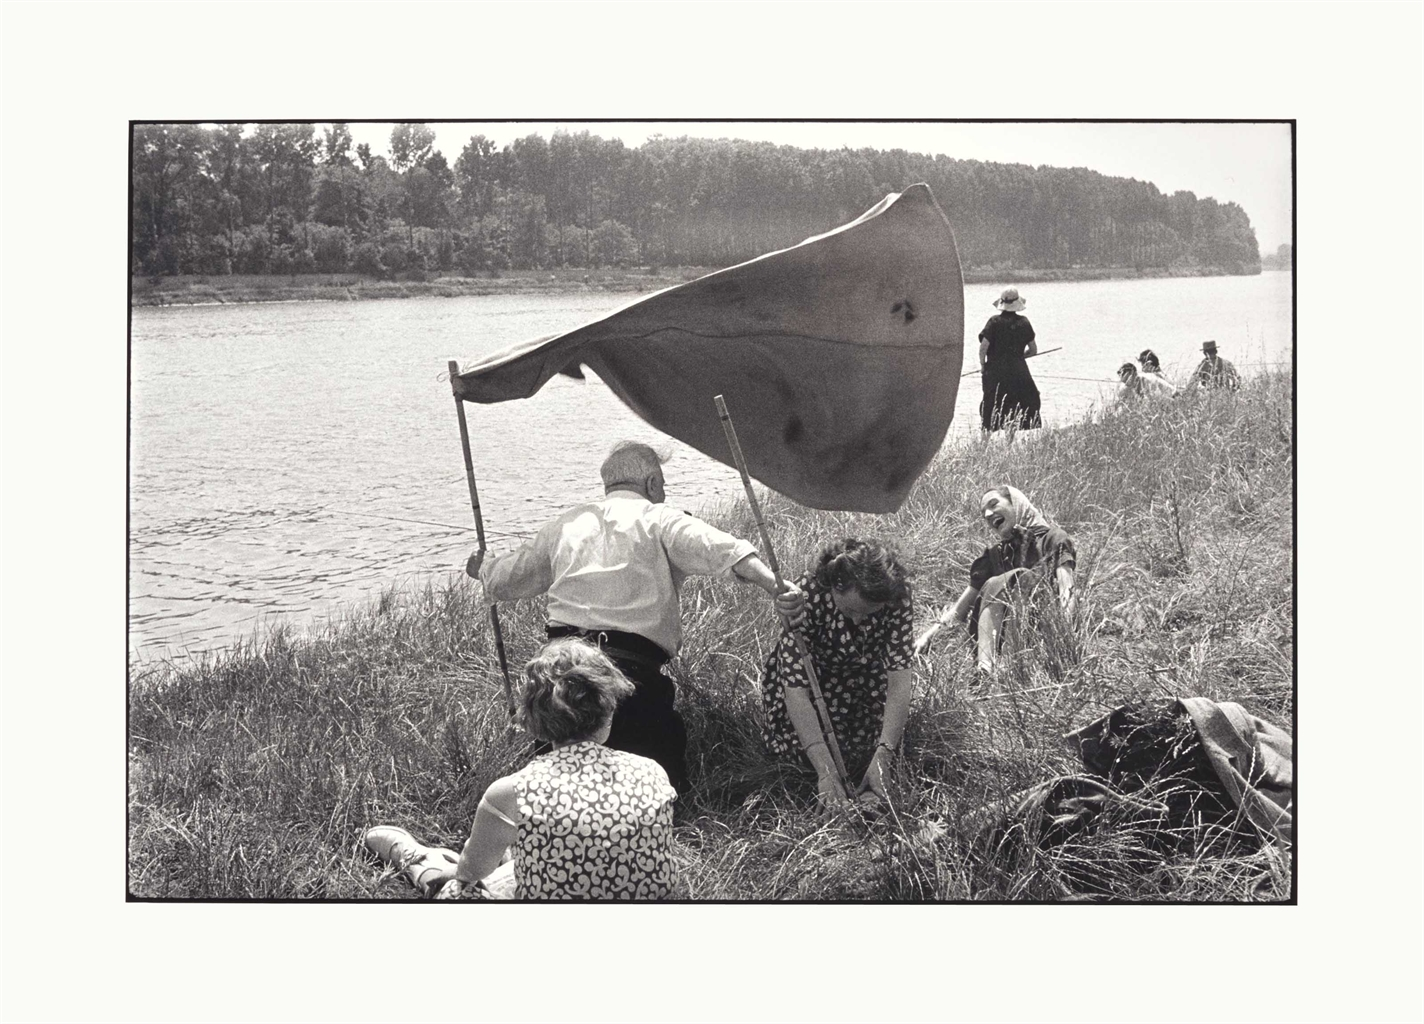 Henri Cartier-Bresson-Bords de la Seine, France-1955